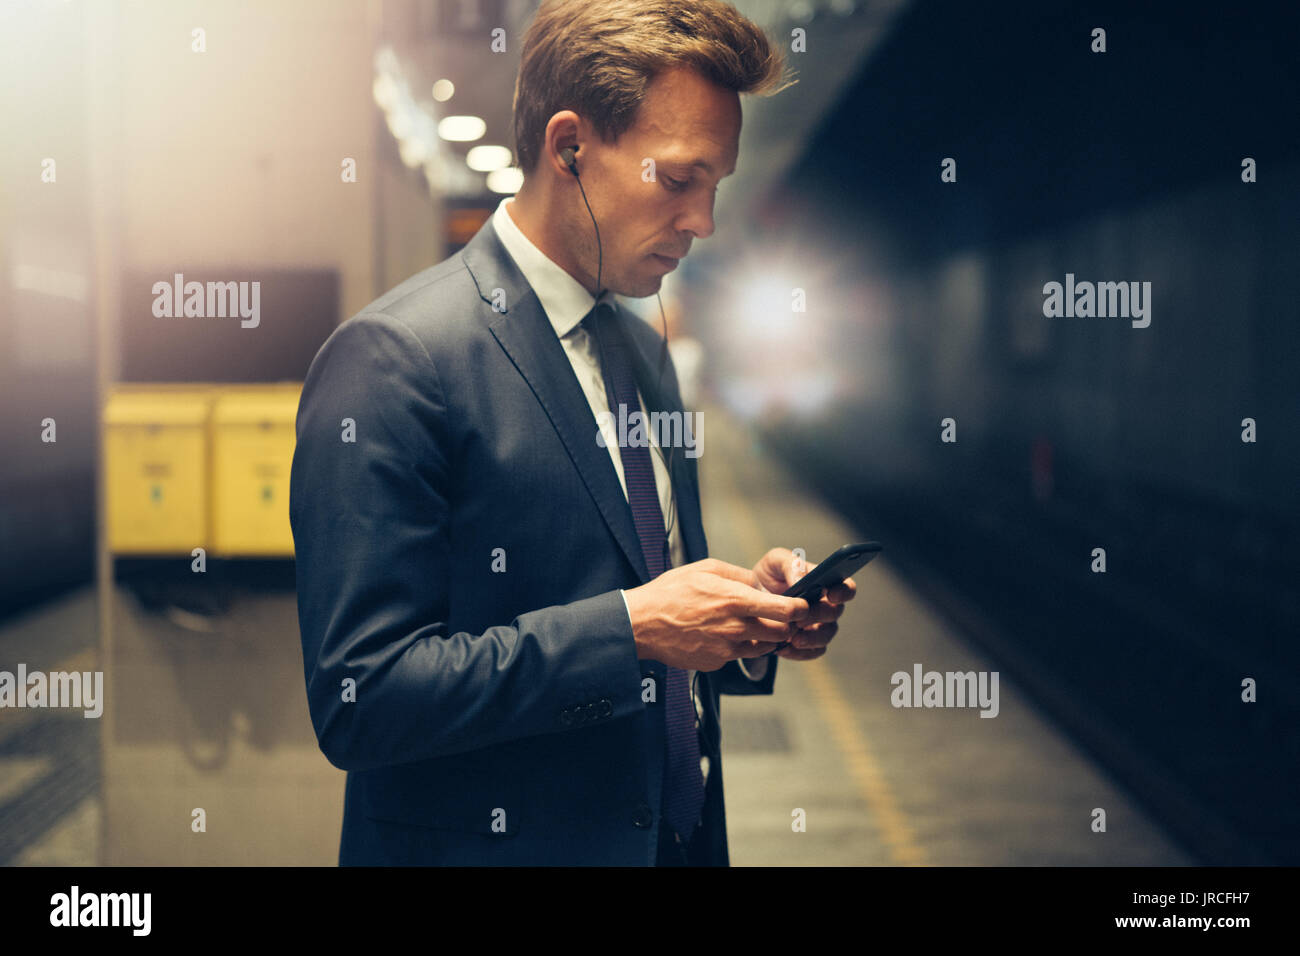 Young businessman wearing earphones and reading text messages on his cellphone while standing on a subway platform during his morning commute - Stock Image